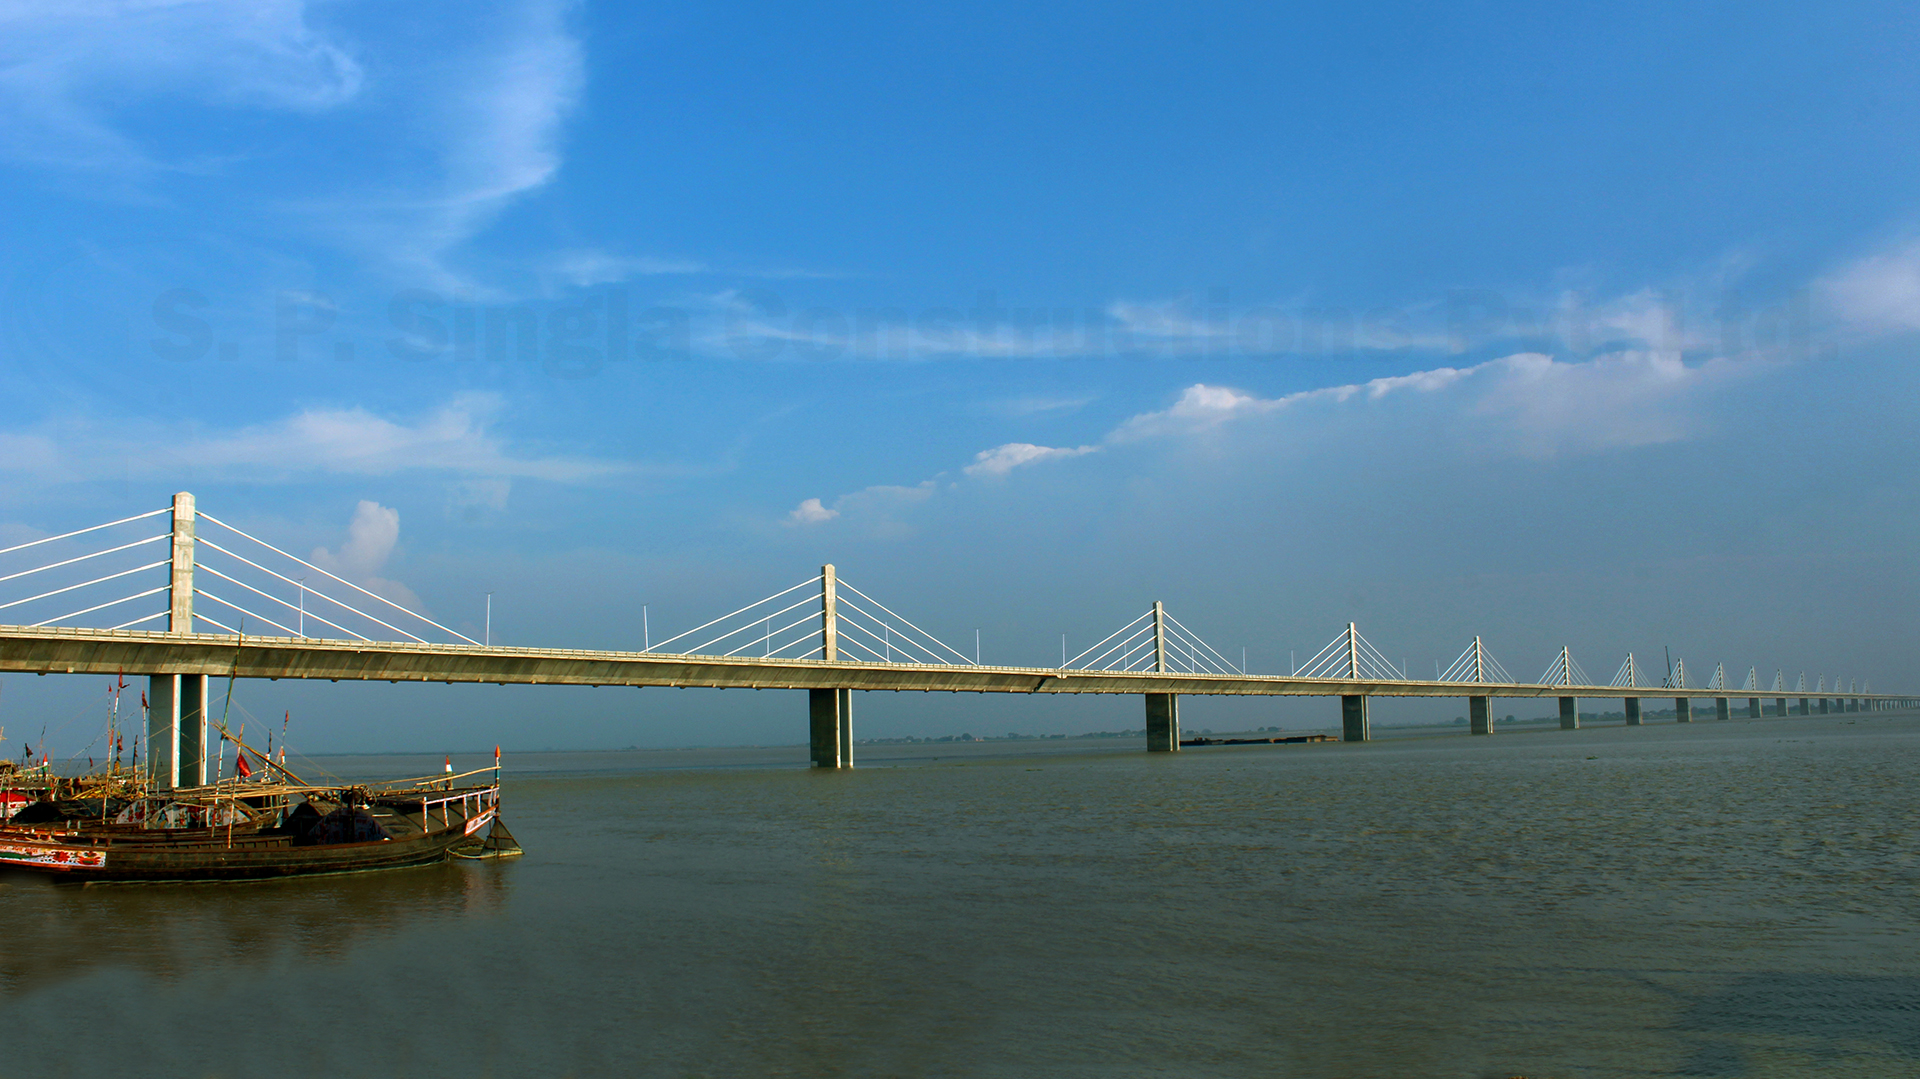 4.35 Km long 4 Lane H.L Bridge with approach road across river Ganga including 1920m long extradosed bridge connecting Ara-Chhapra in Bhojpur, Bihar